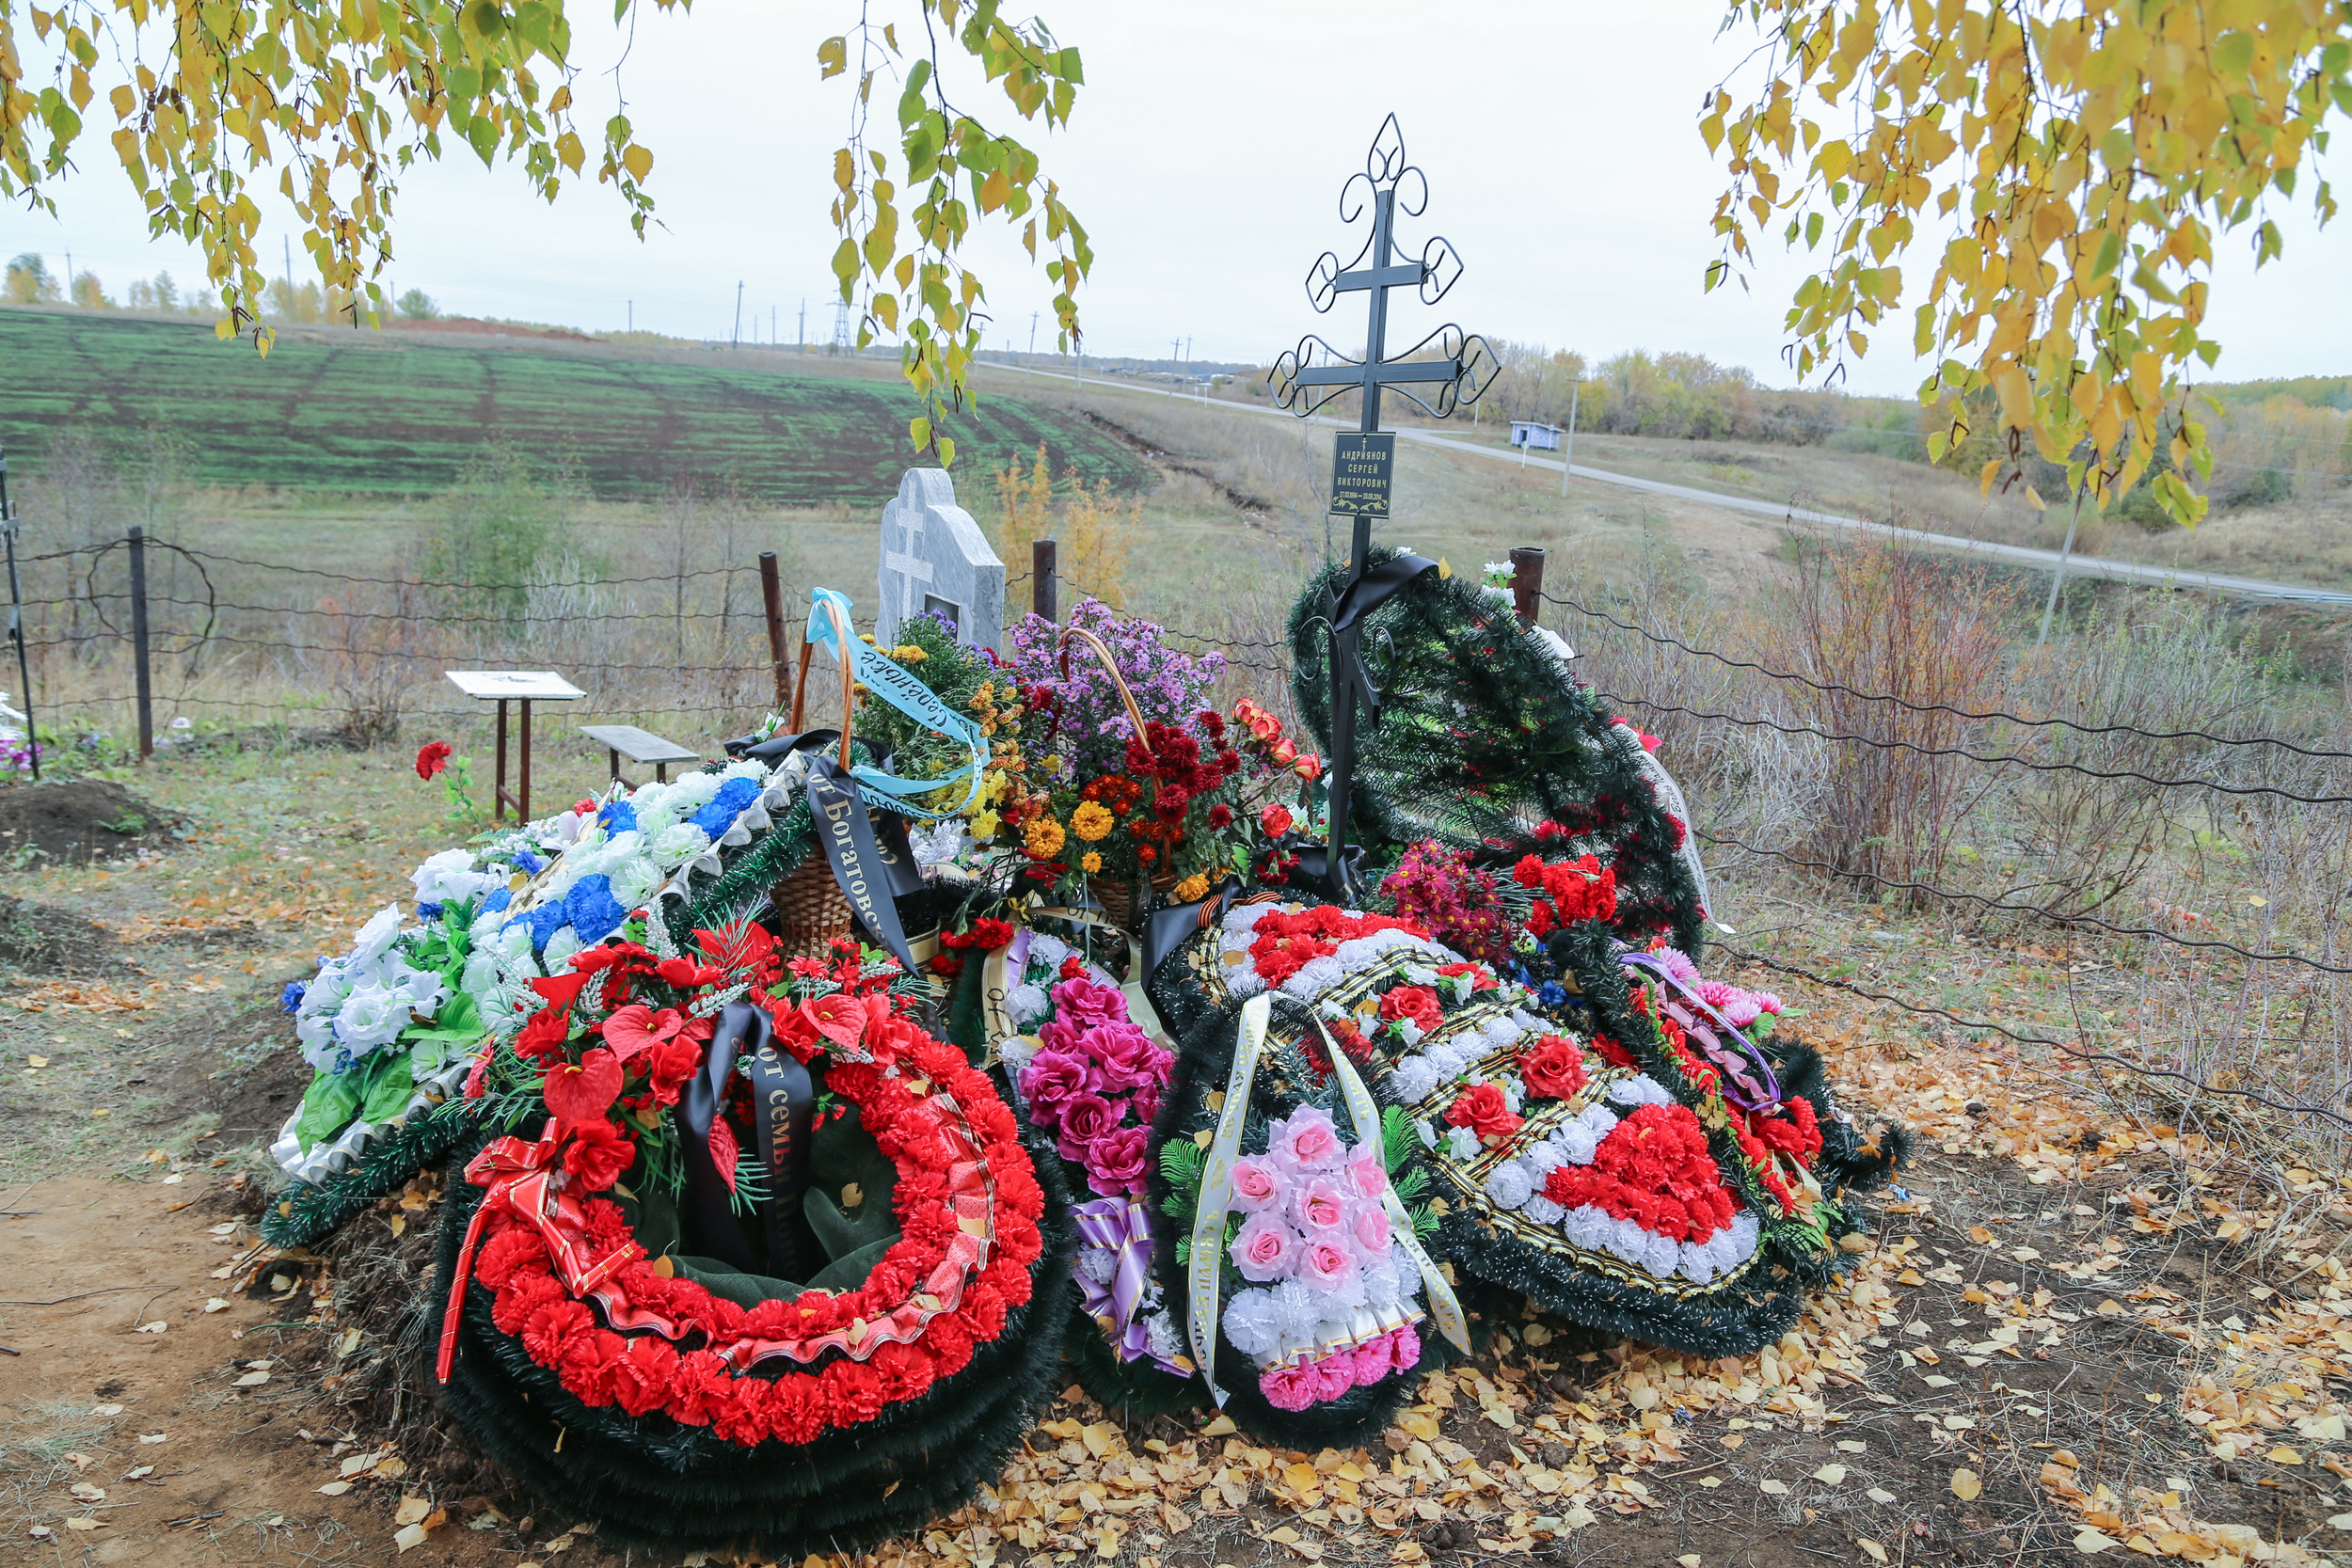 The grave of Sergei, a 20-year-old paratrooper believed to have been killed in action in Ukraine.